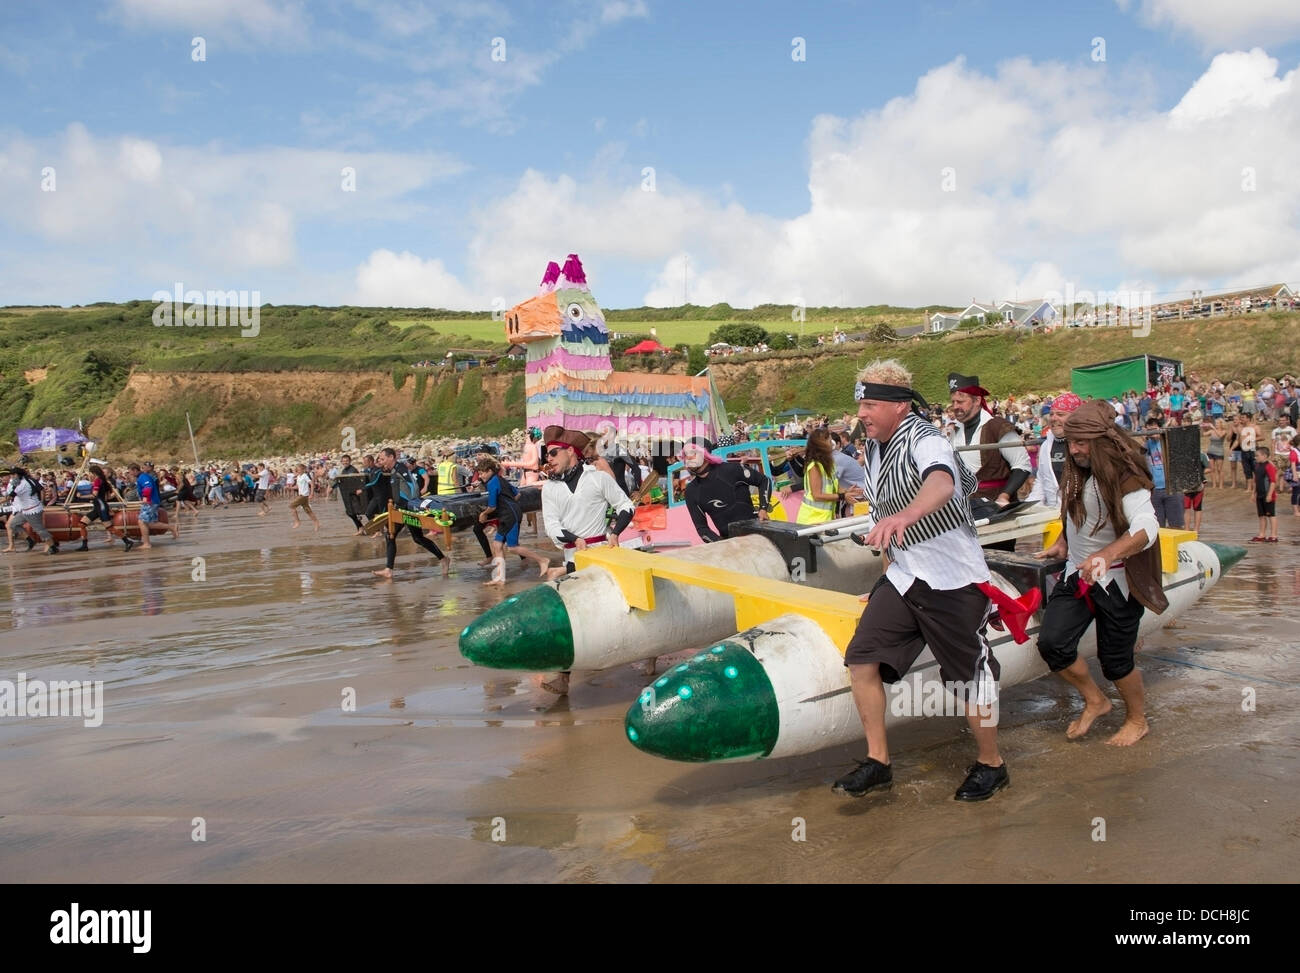 Cornwall, UK, 18th August 2013. This is the sixth year in succession the Praa Sands Raft Race has taken place.  - Stock Image